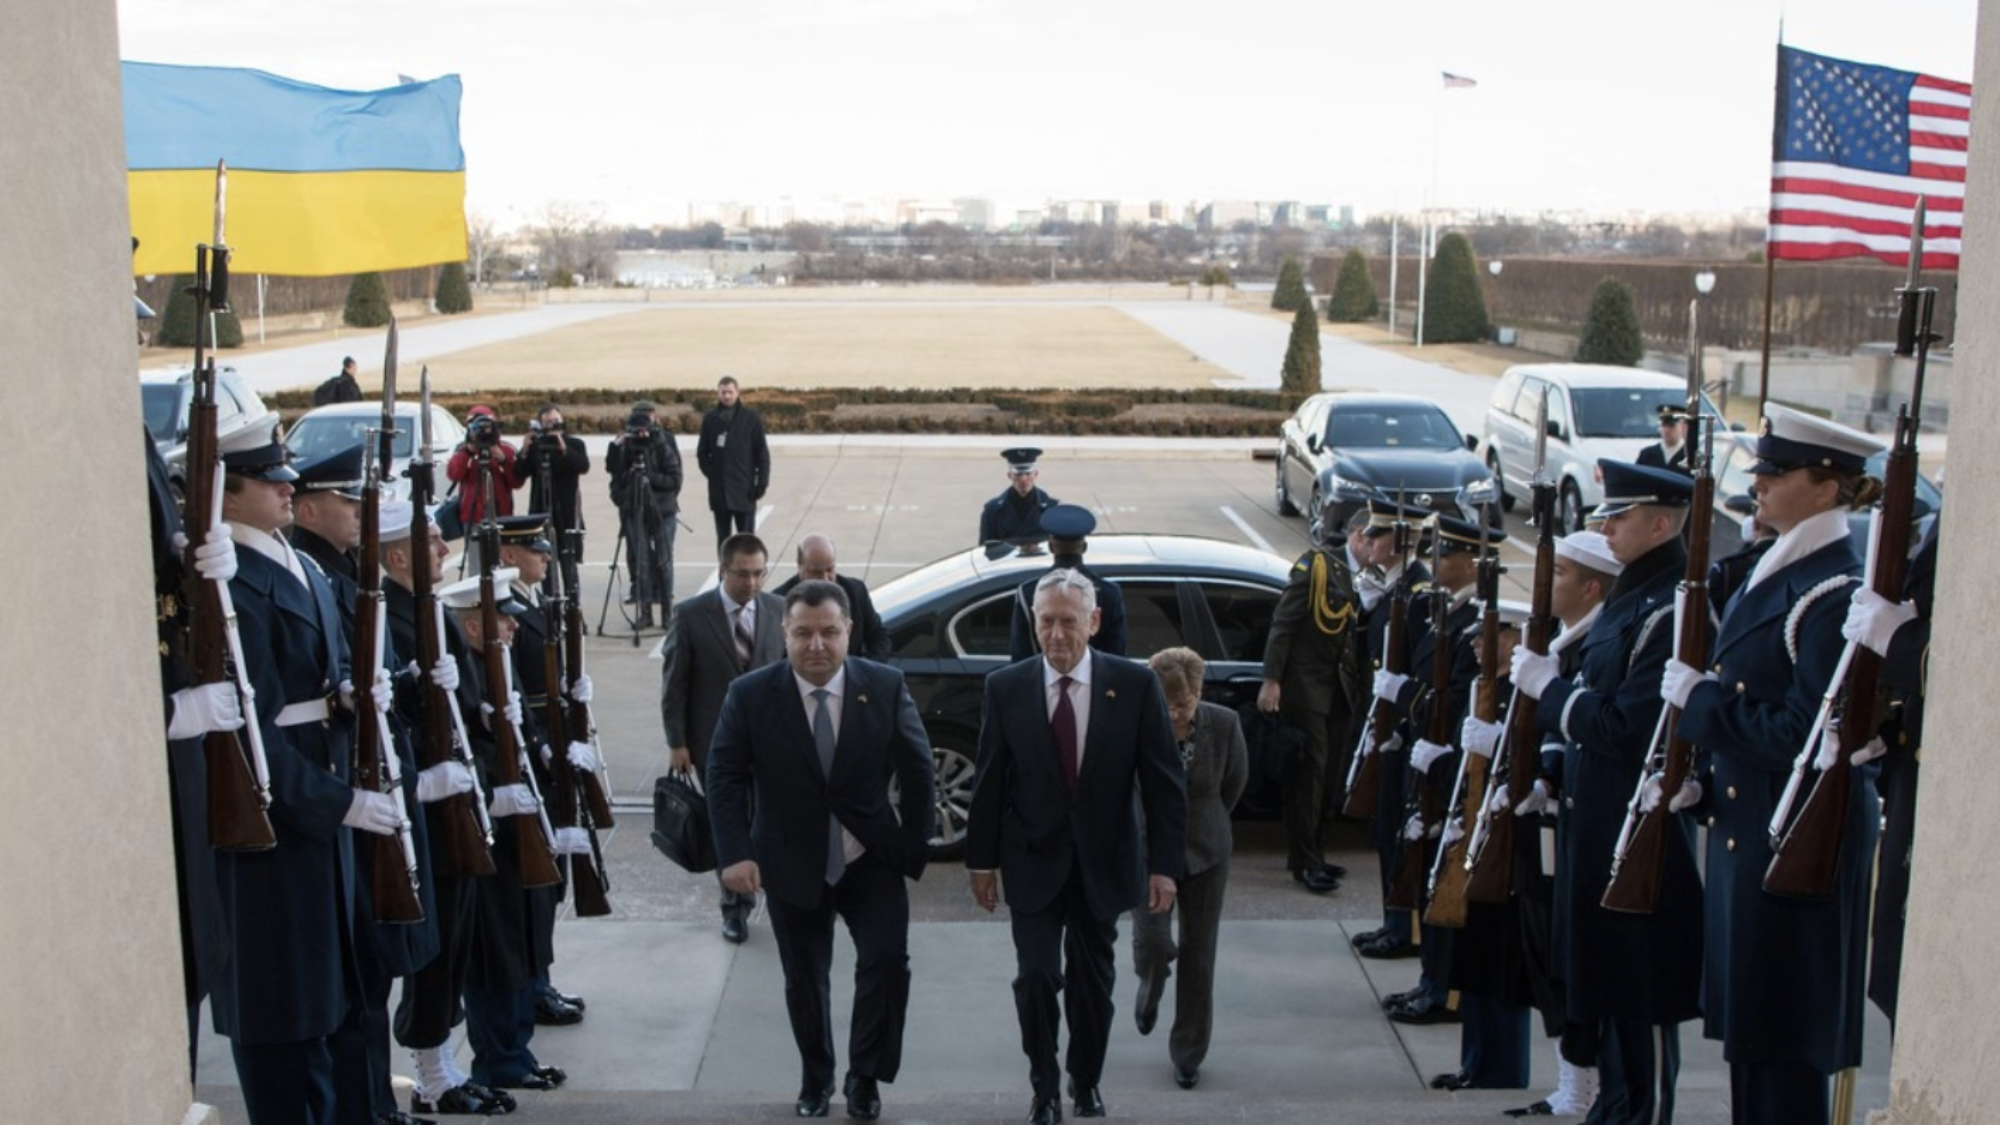 The U.S. and Ukranian Defense Secretaries walk up a set of stairs flanked by a row of U.S. soldiers.